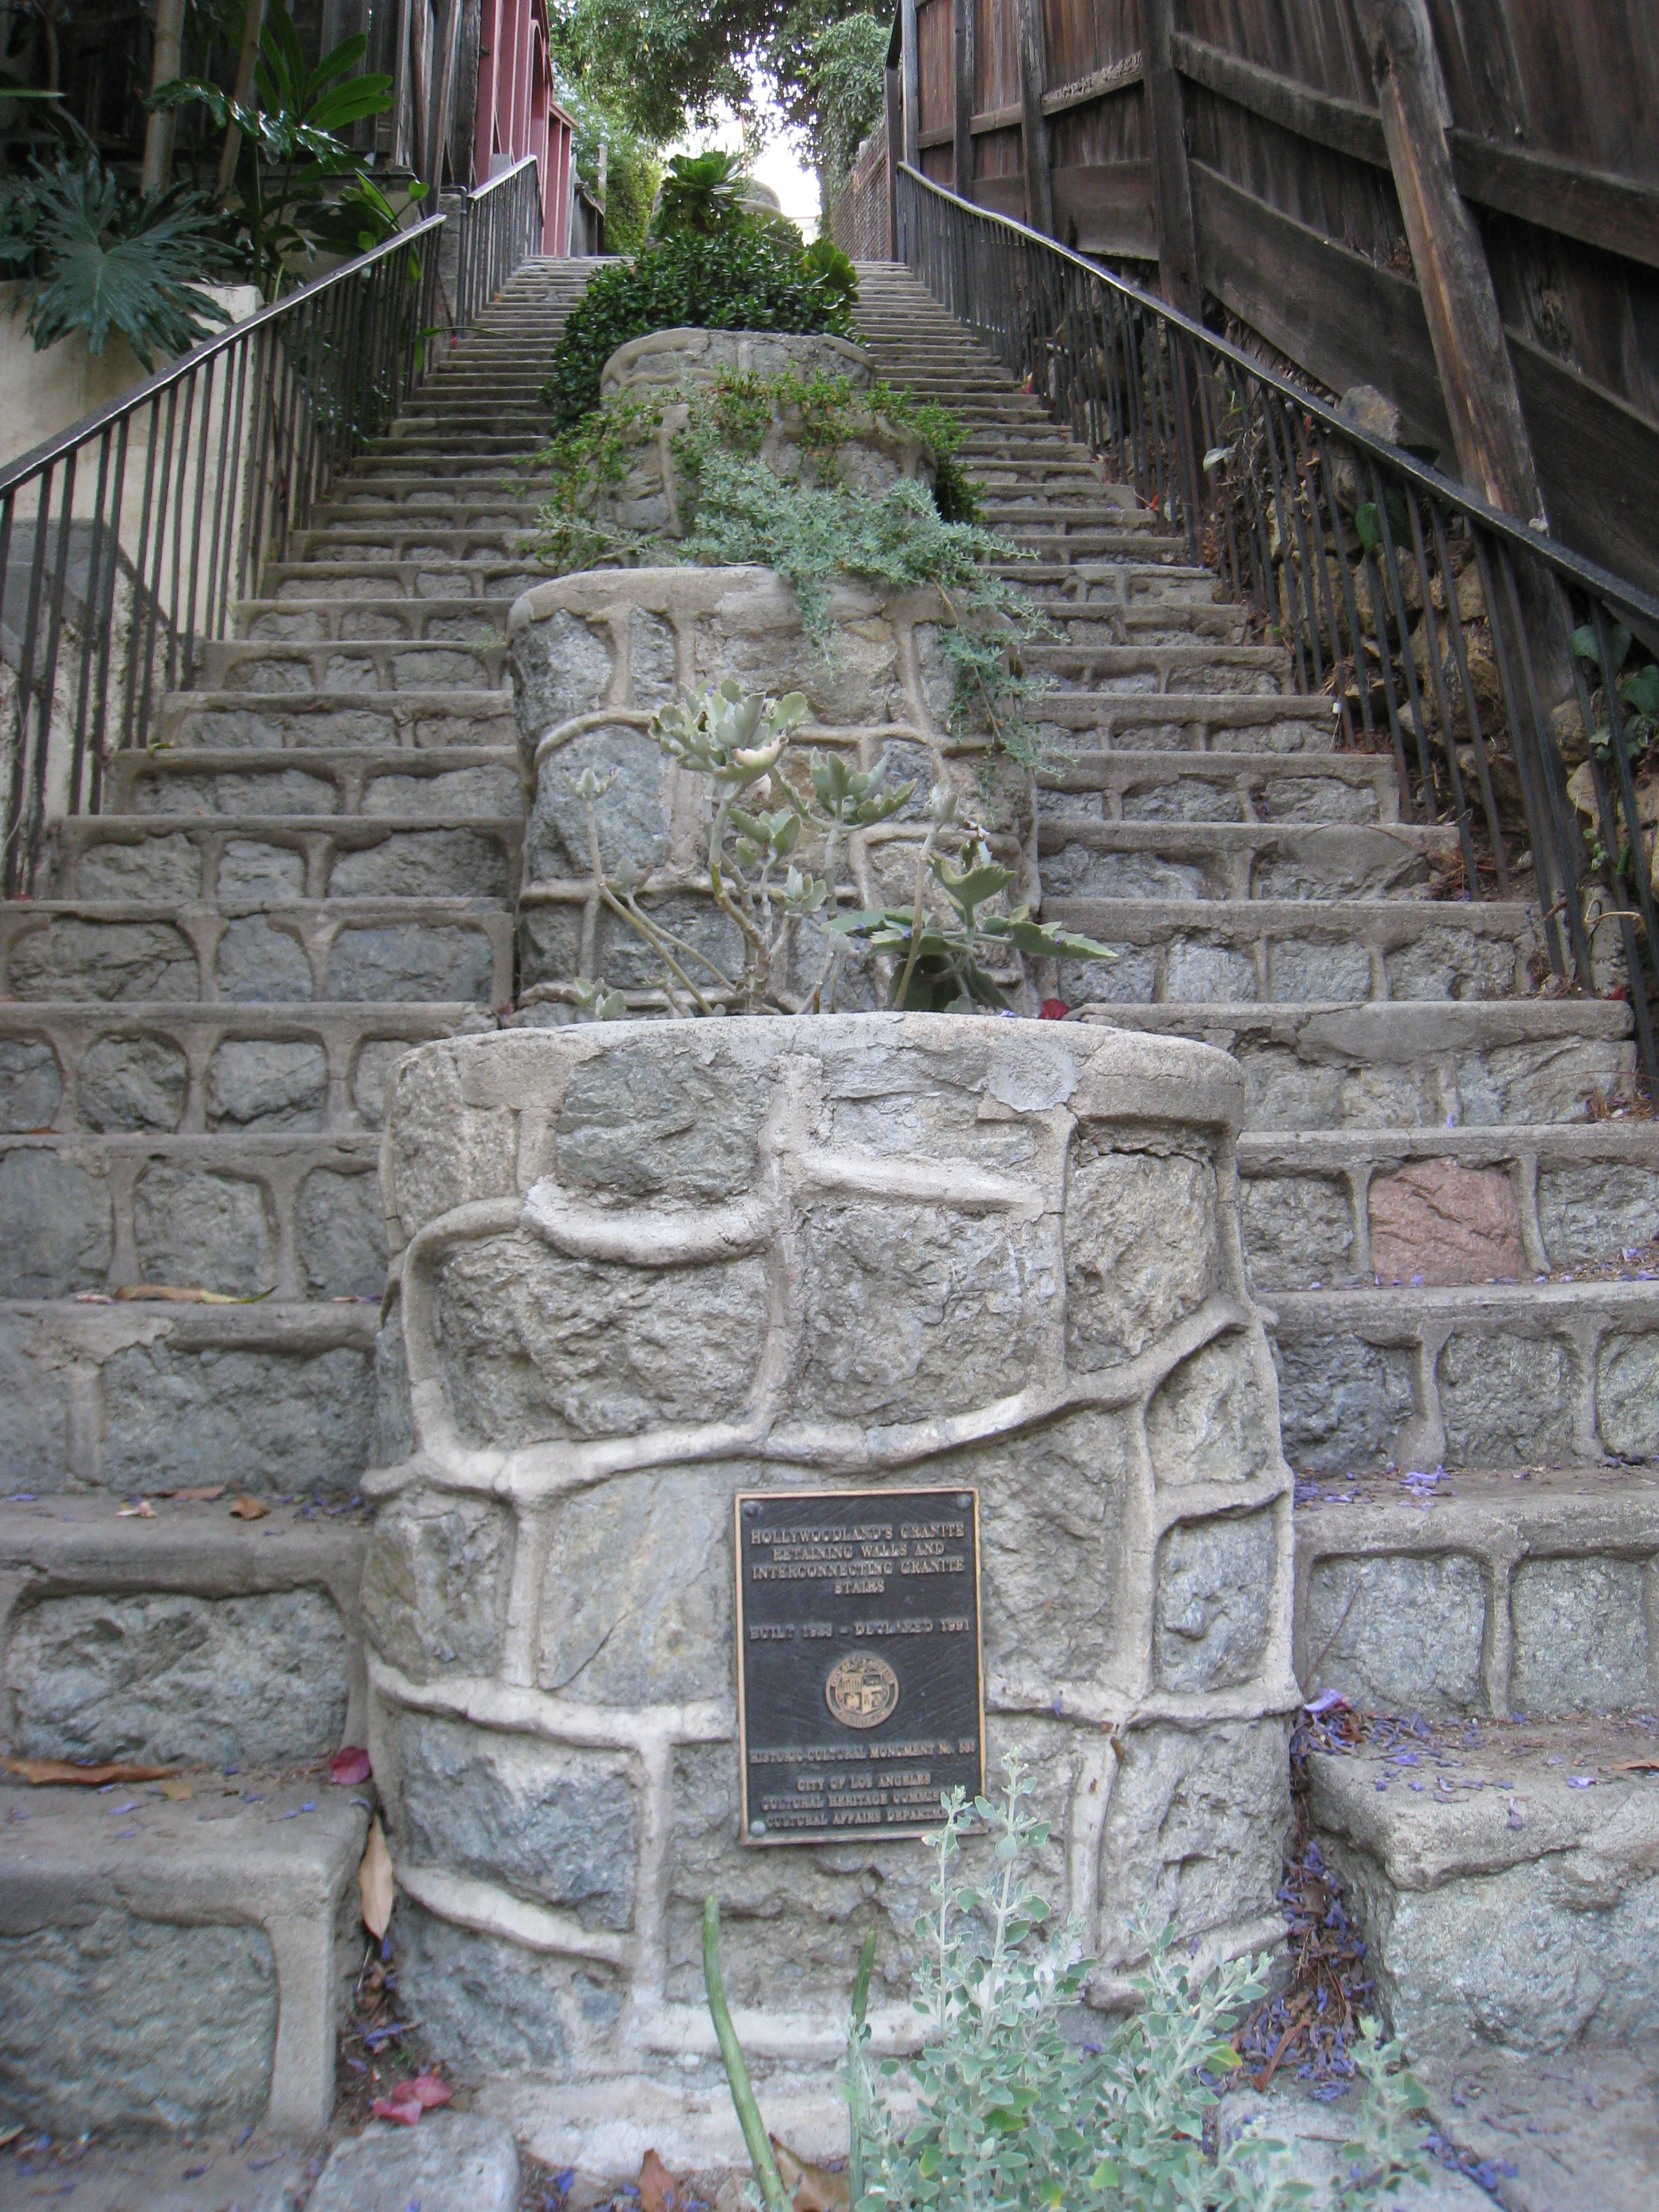 The Belden Stairs